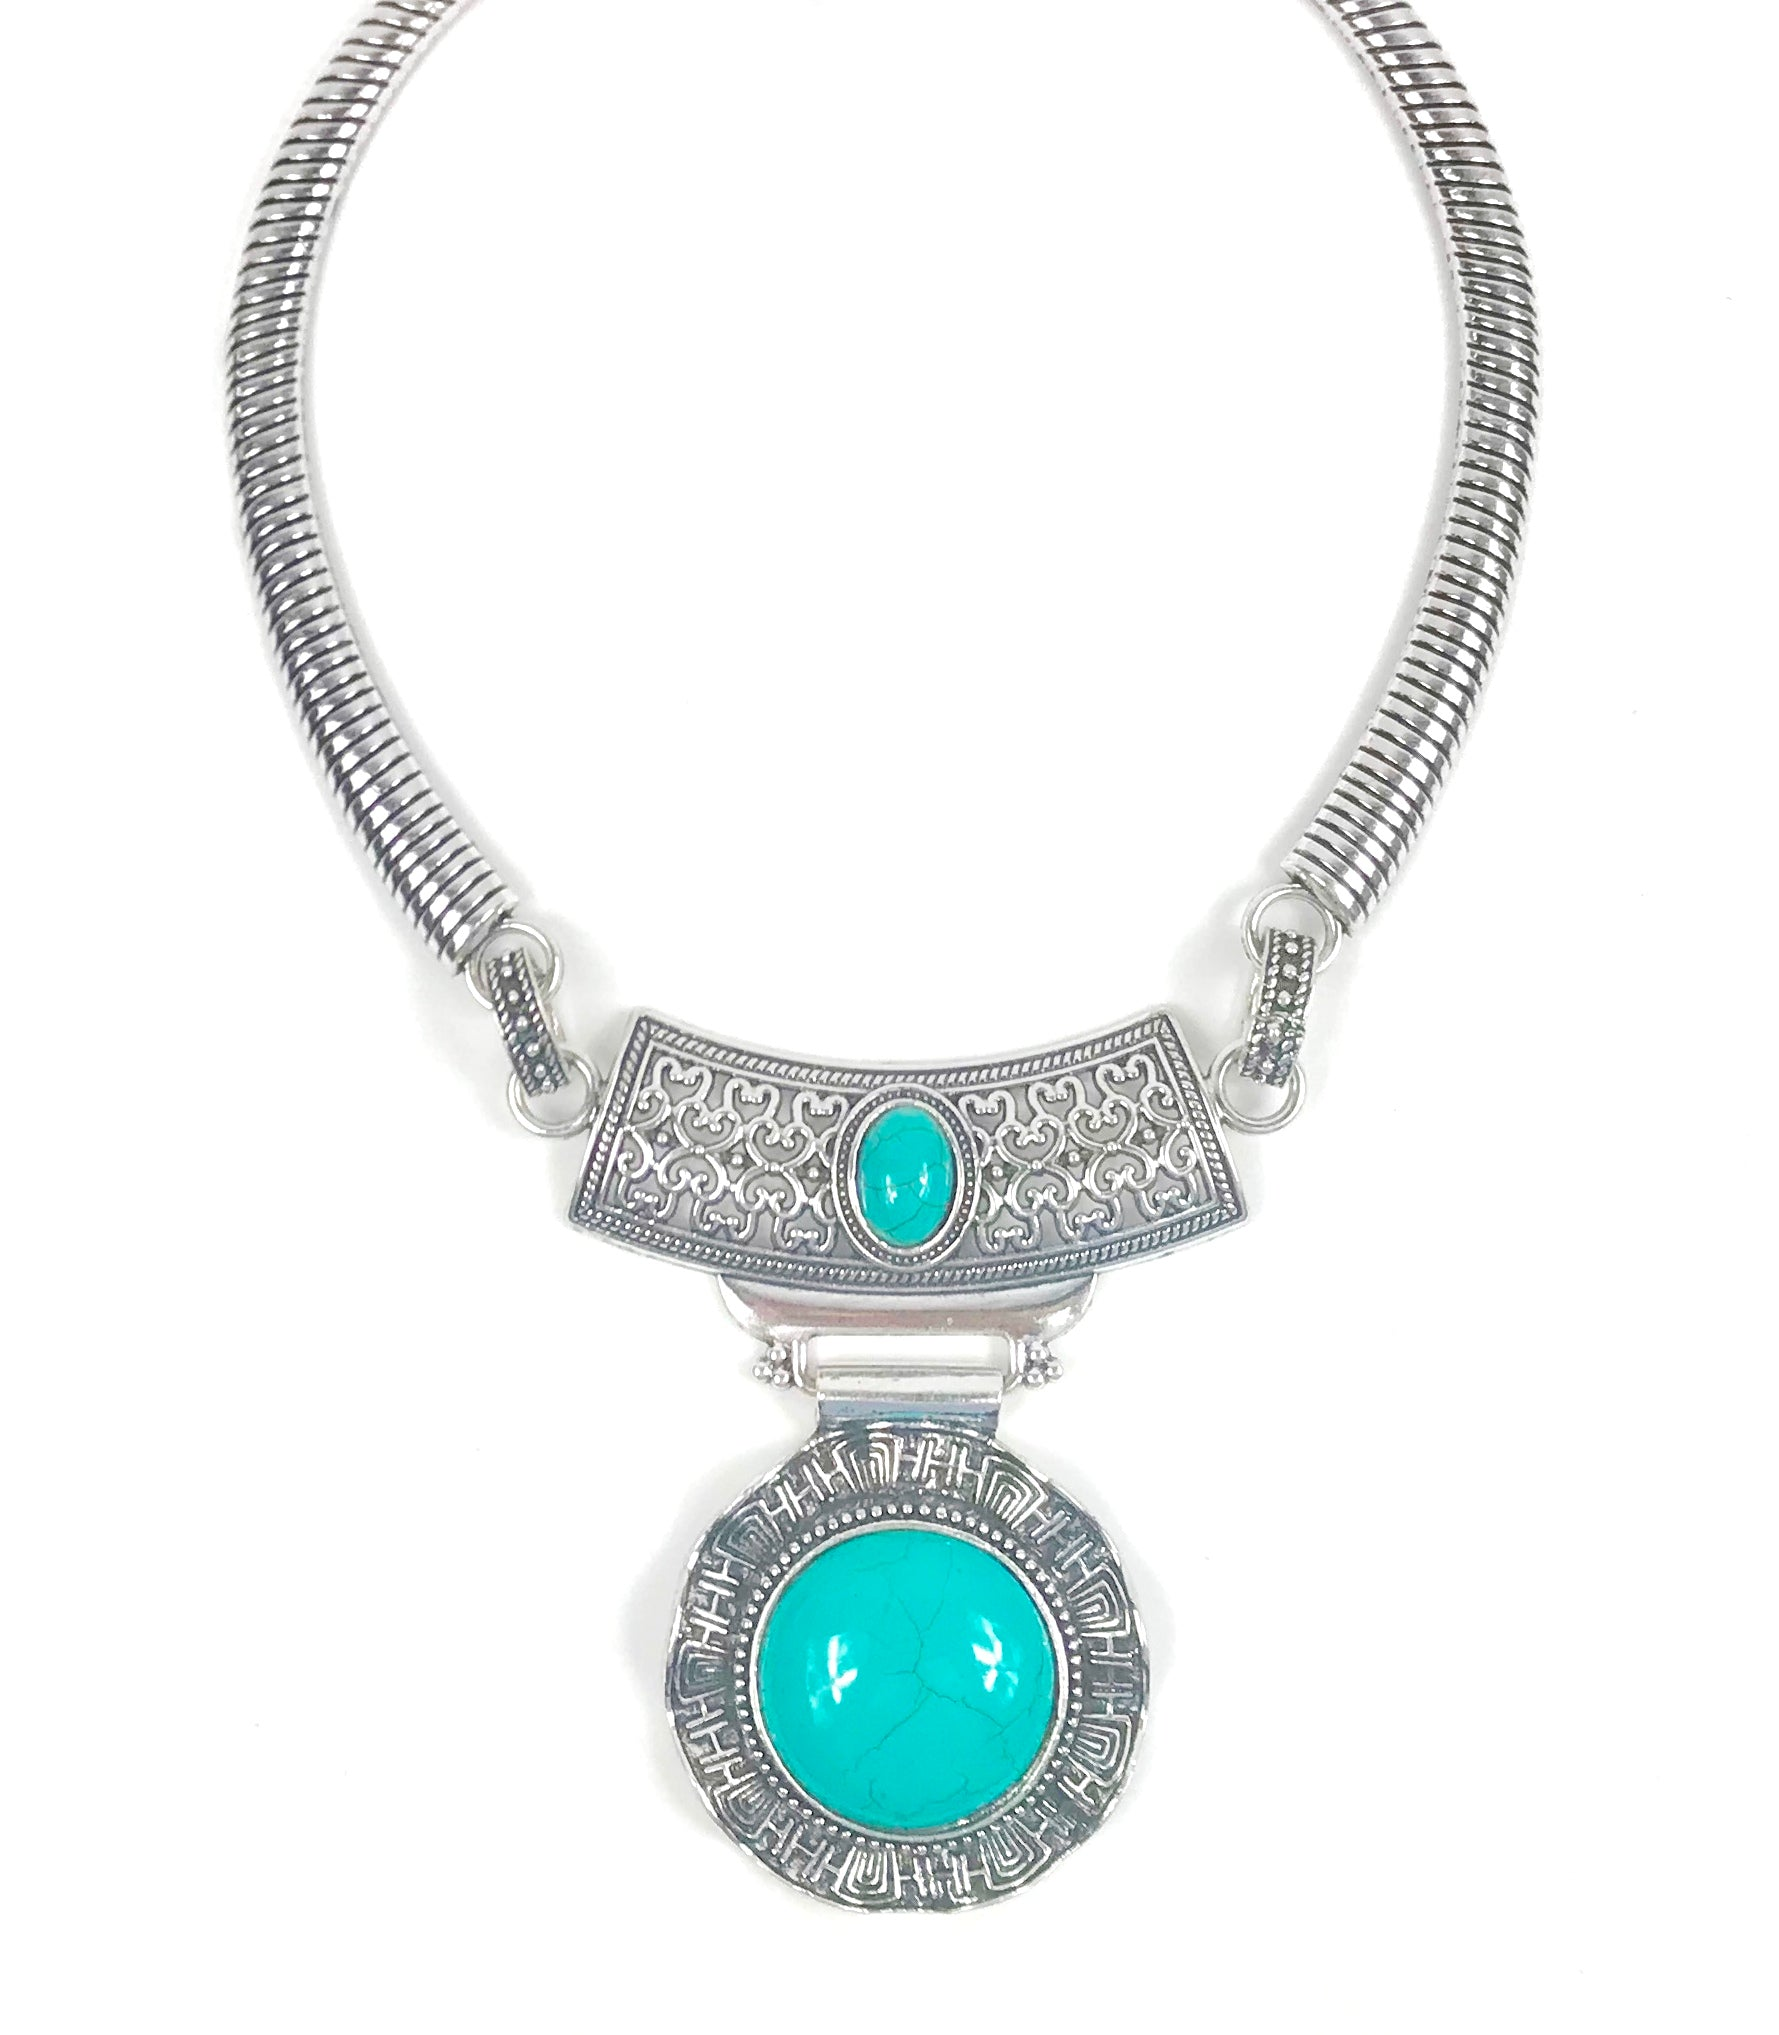 Silver Metal Necklace with Blue Stone